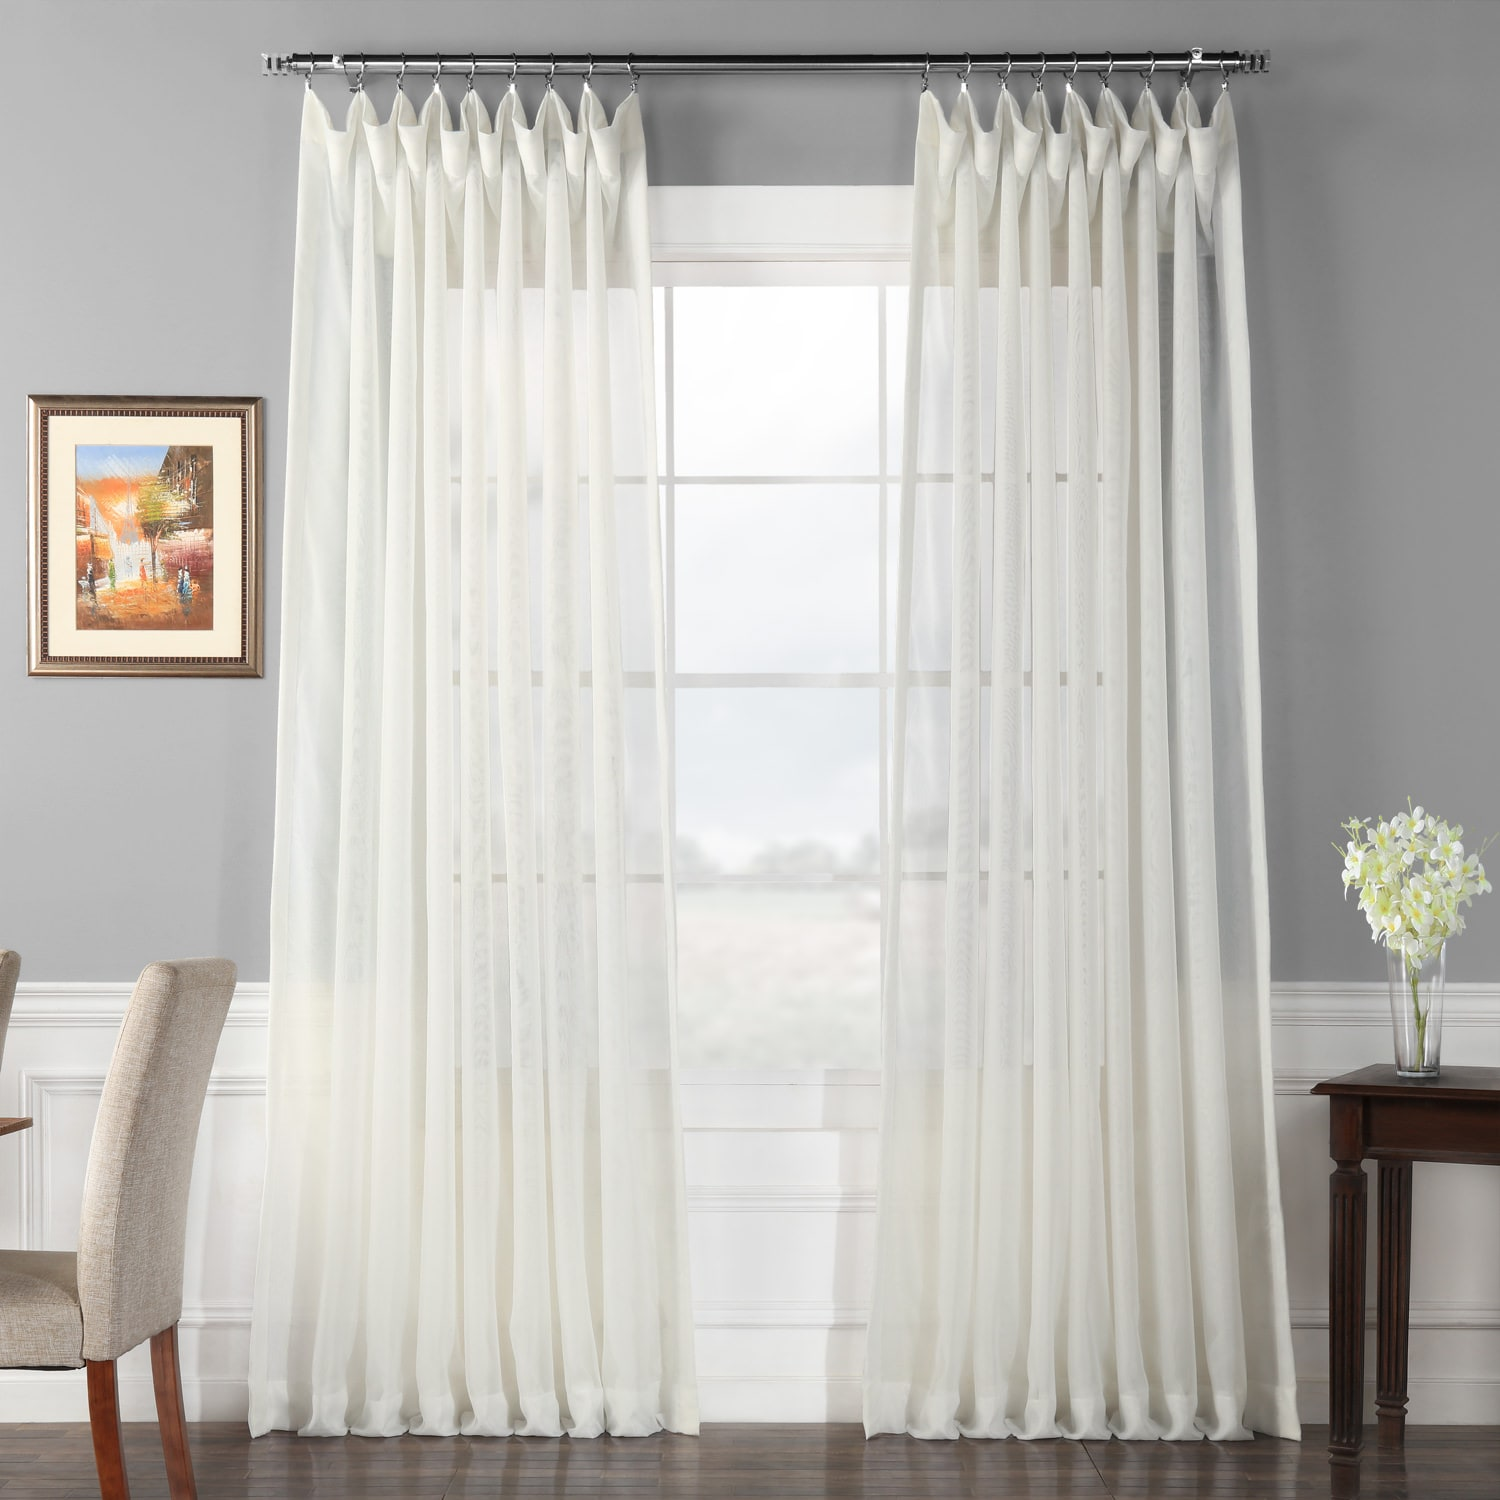 signature double layered extra wide off white sheer curtain - White Sheer Curtains